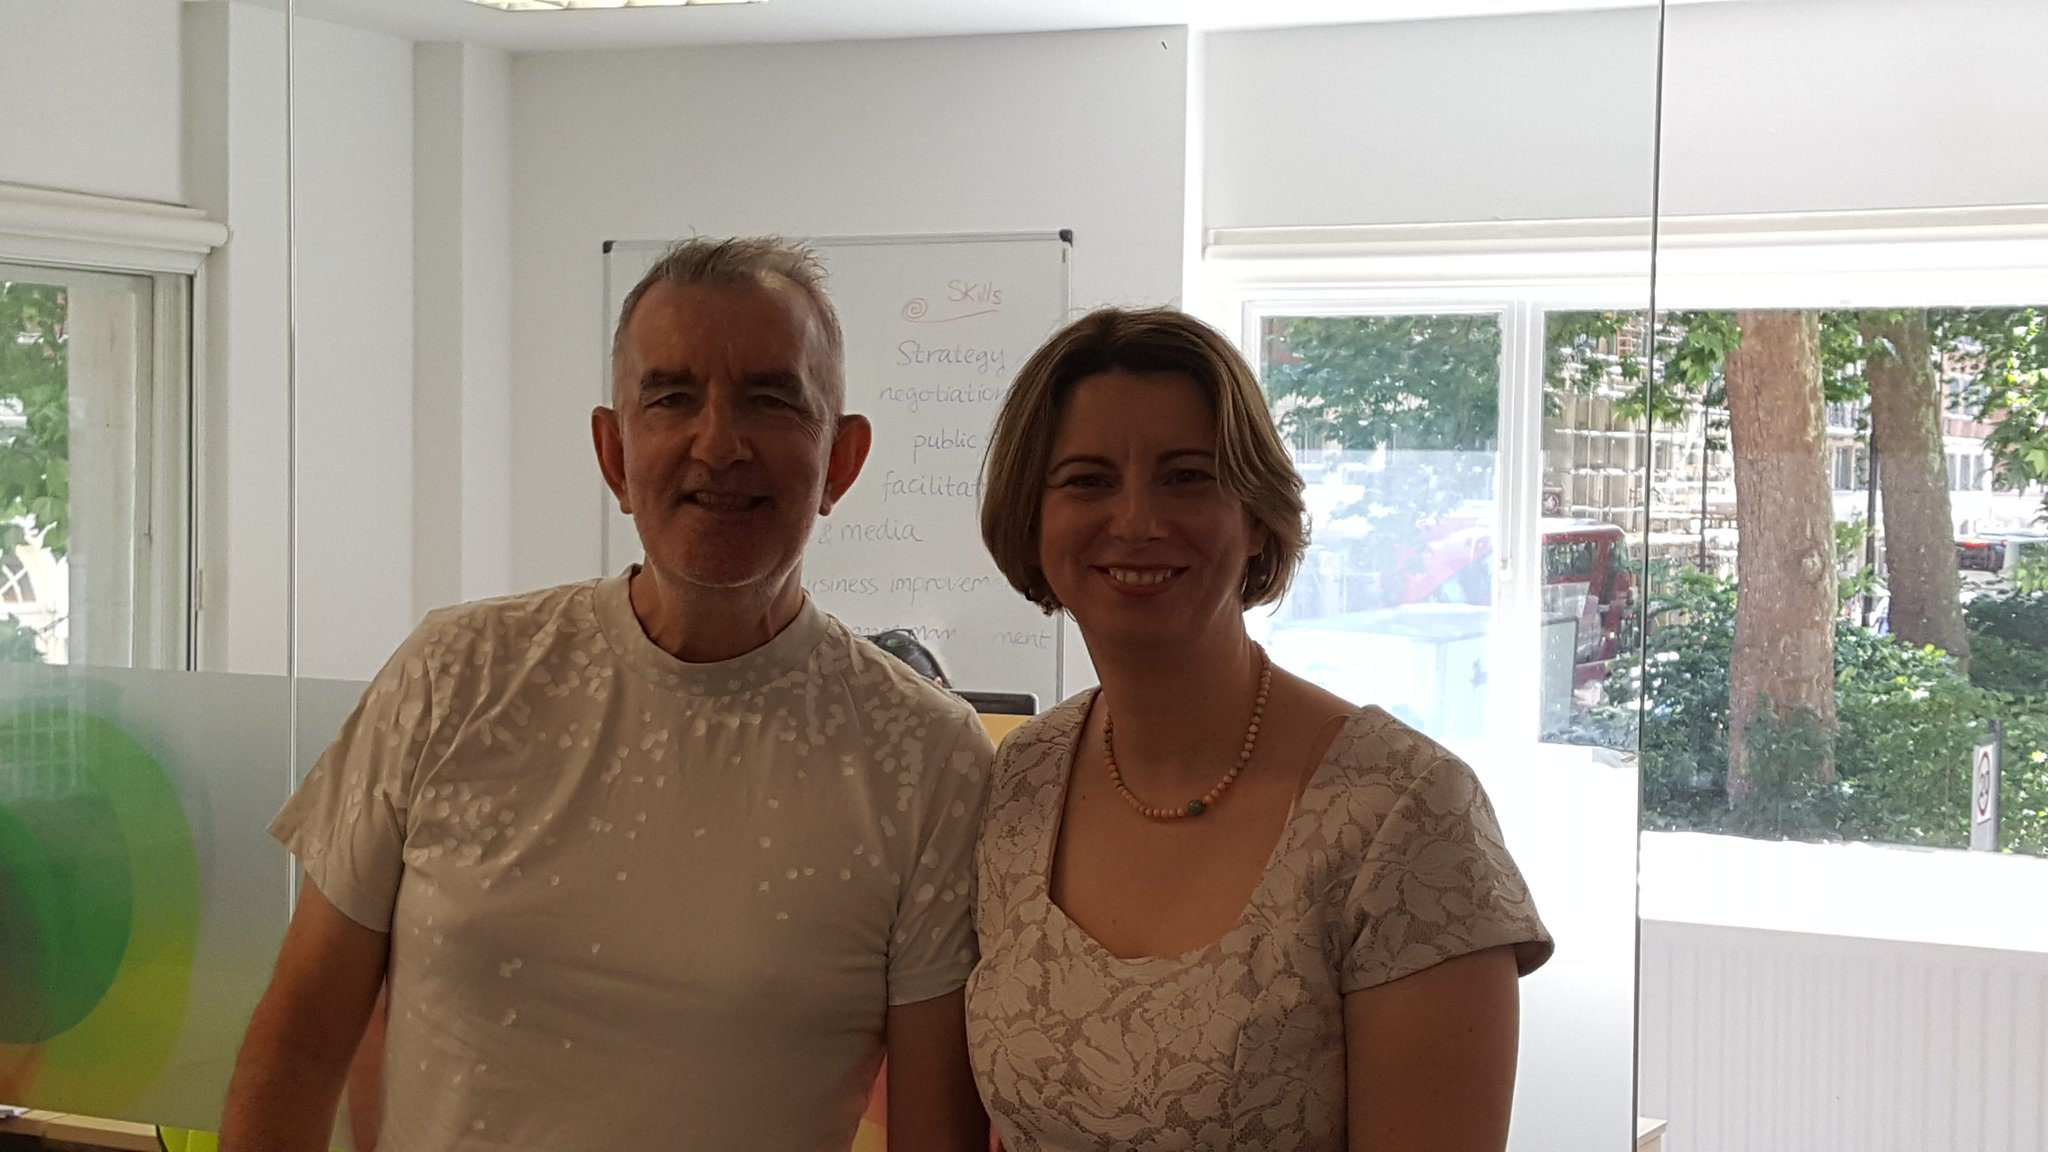 Your hosts are ready. Join us at midday for 'what makes a good research environment' #whywedoresearch https://t.co/5Enl1T1L8b